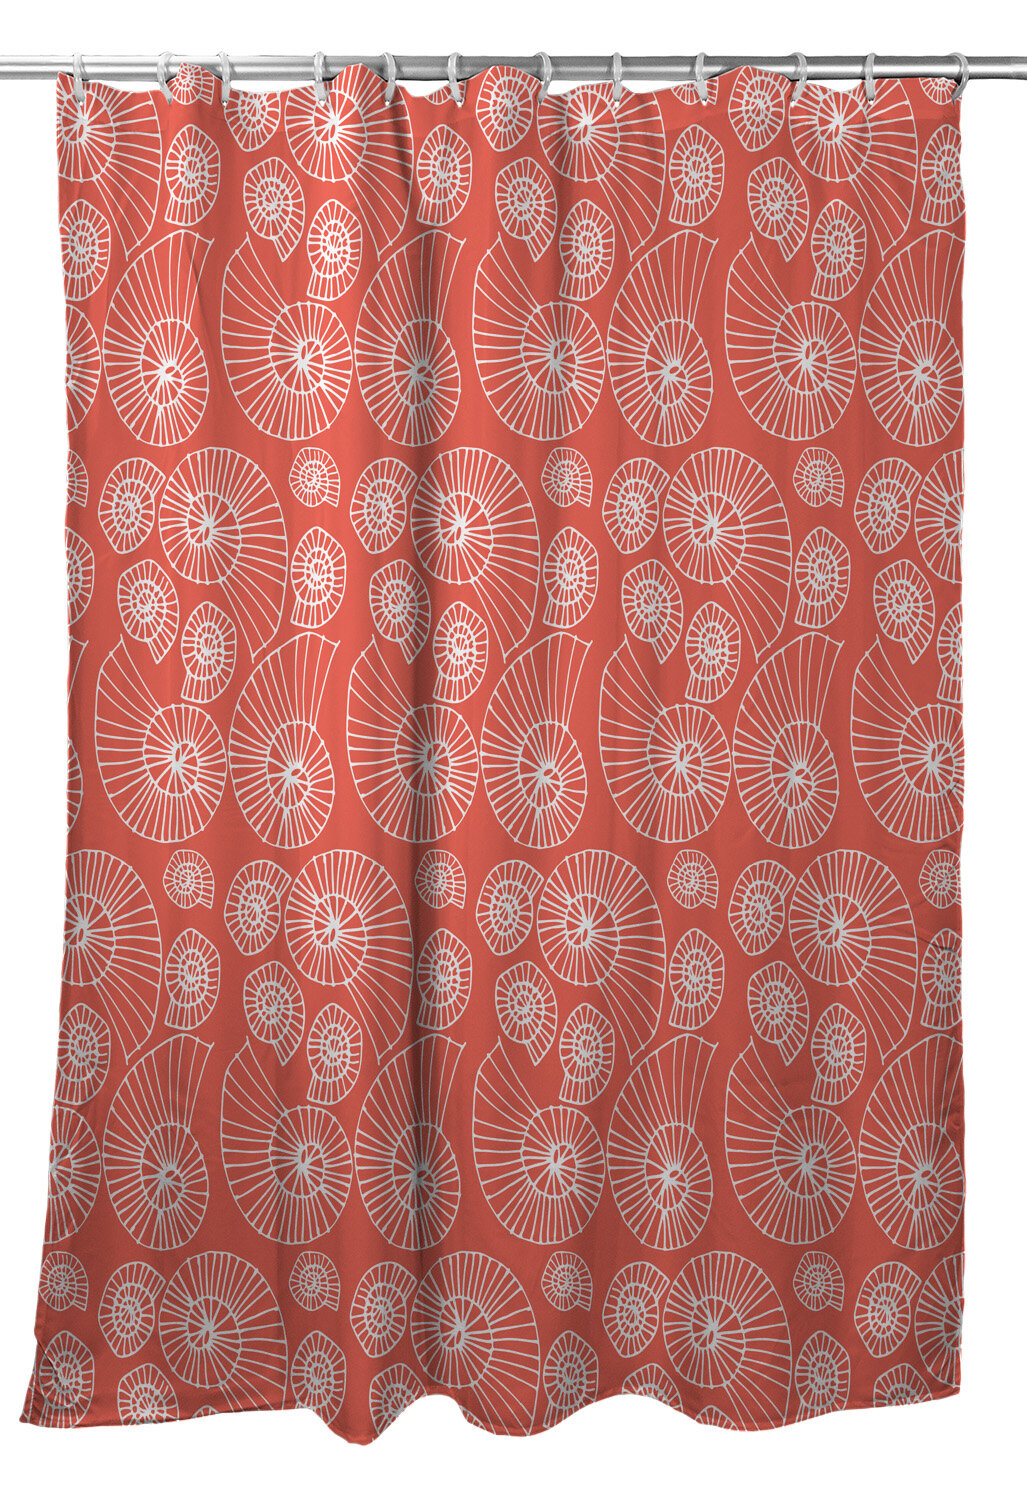 Highland Dunes Corinne Nautilus Outline Single Shower Curtain Wayfair